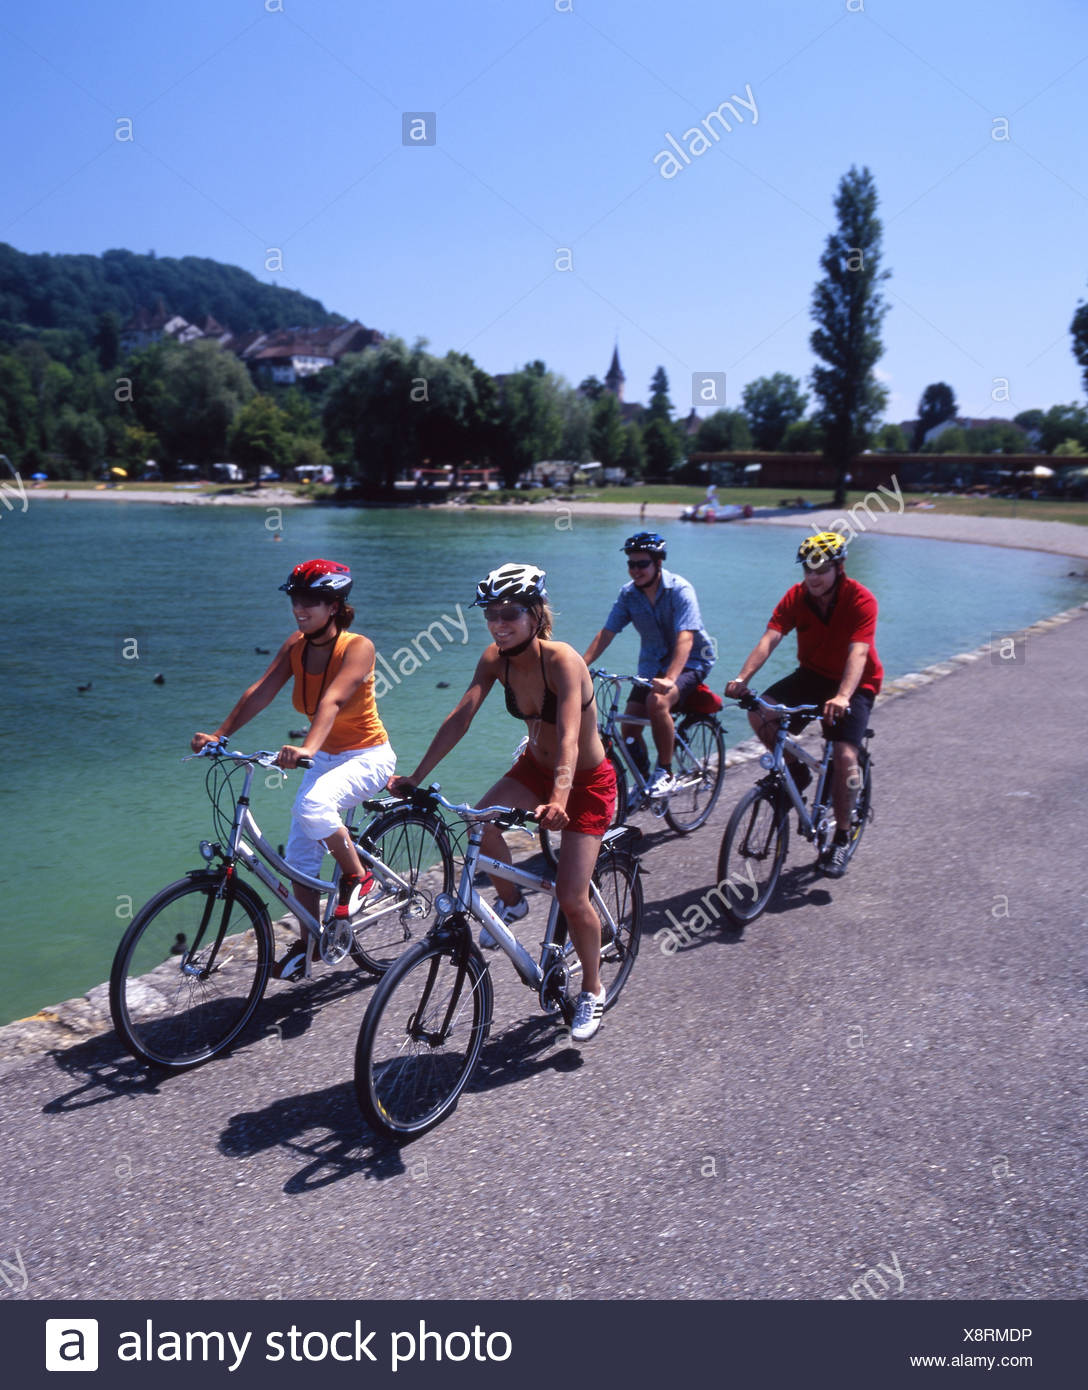 Canton Bern bicycle Bielersee Lake Biel bike canton Erlach group lake lakes scenery landscape shore spo - Stock Image